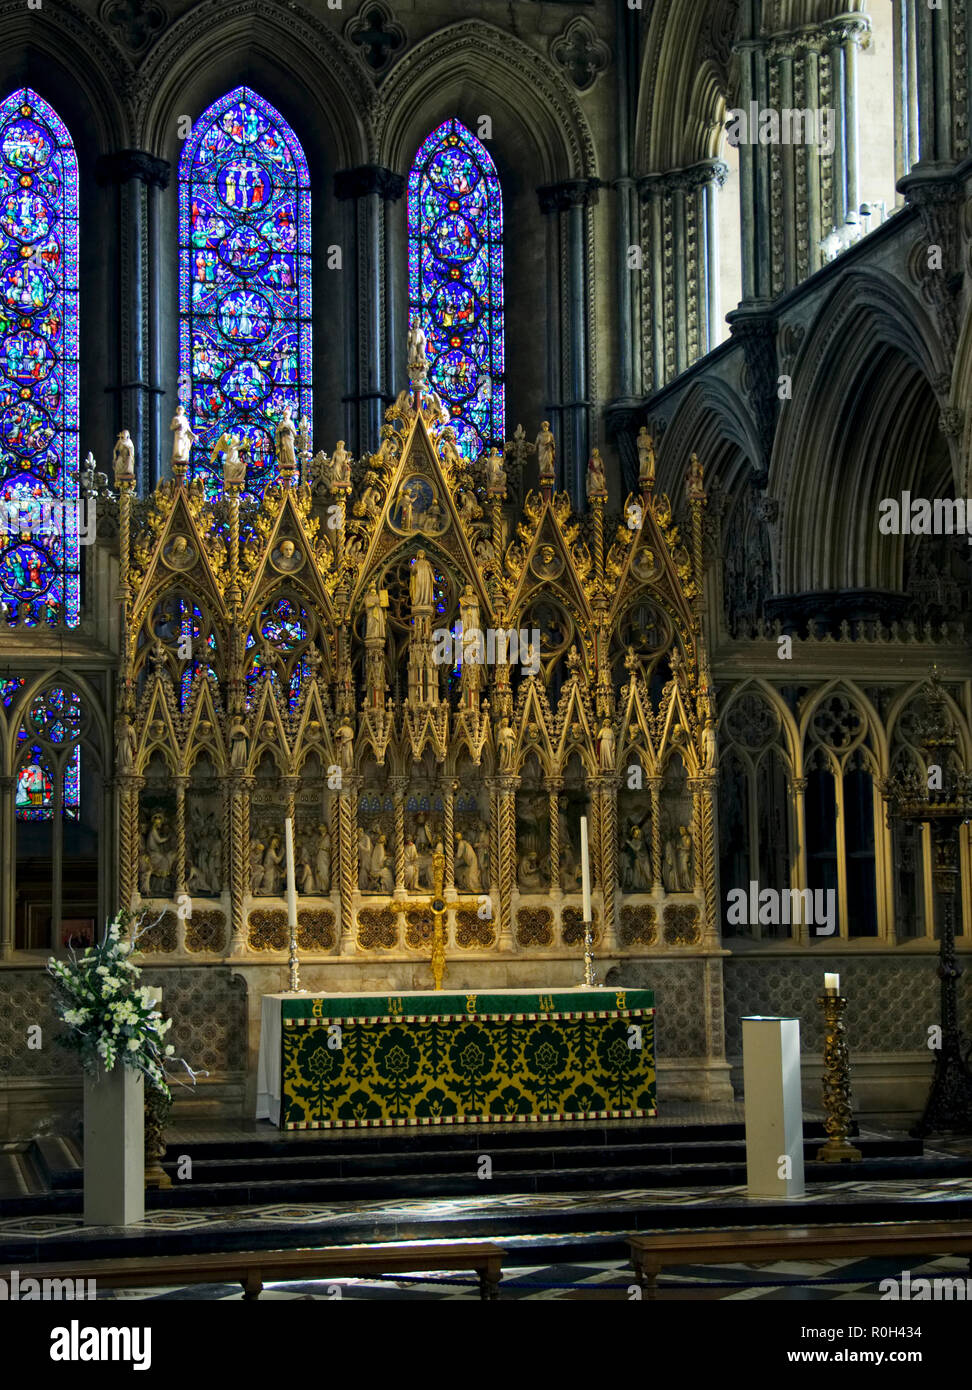 The magnificent ornately carved and gold painted High Altar of Ely Cathedral in Cambridgeshire. Stock Photo